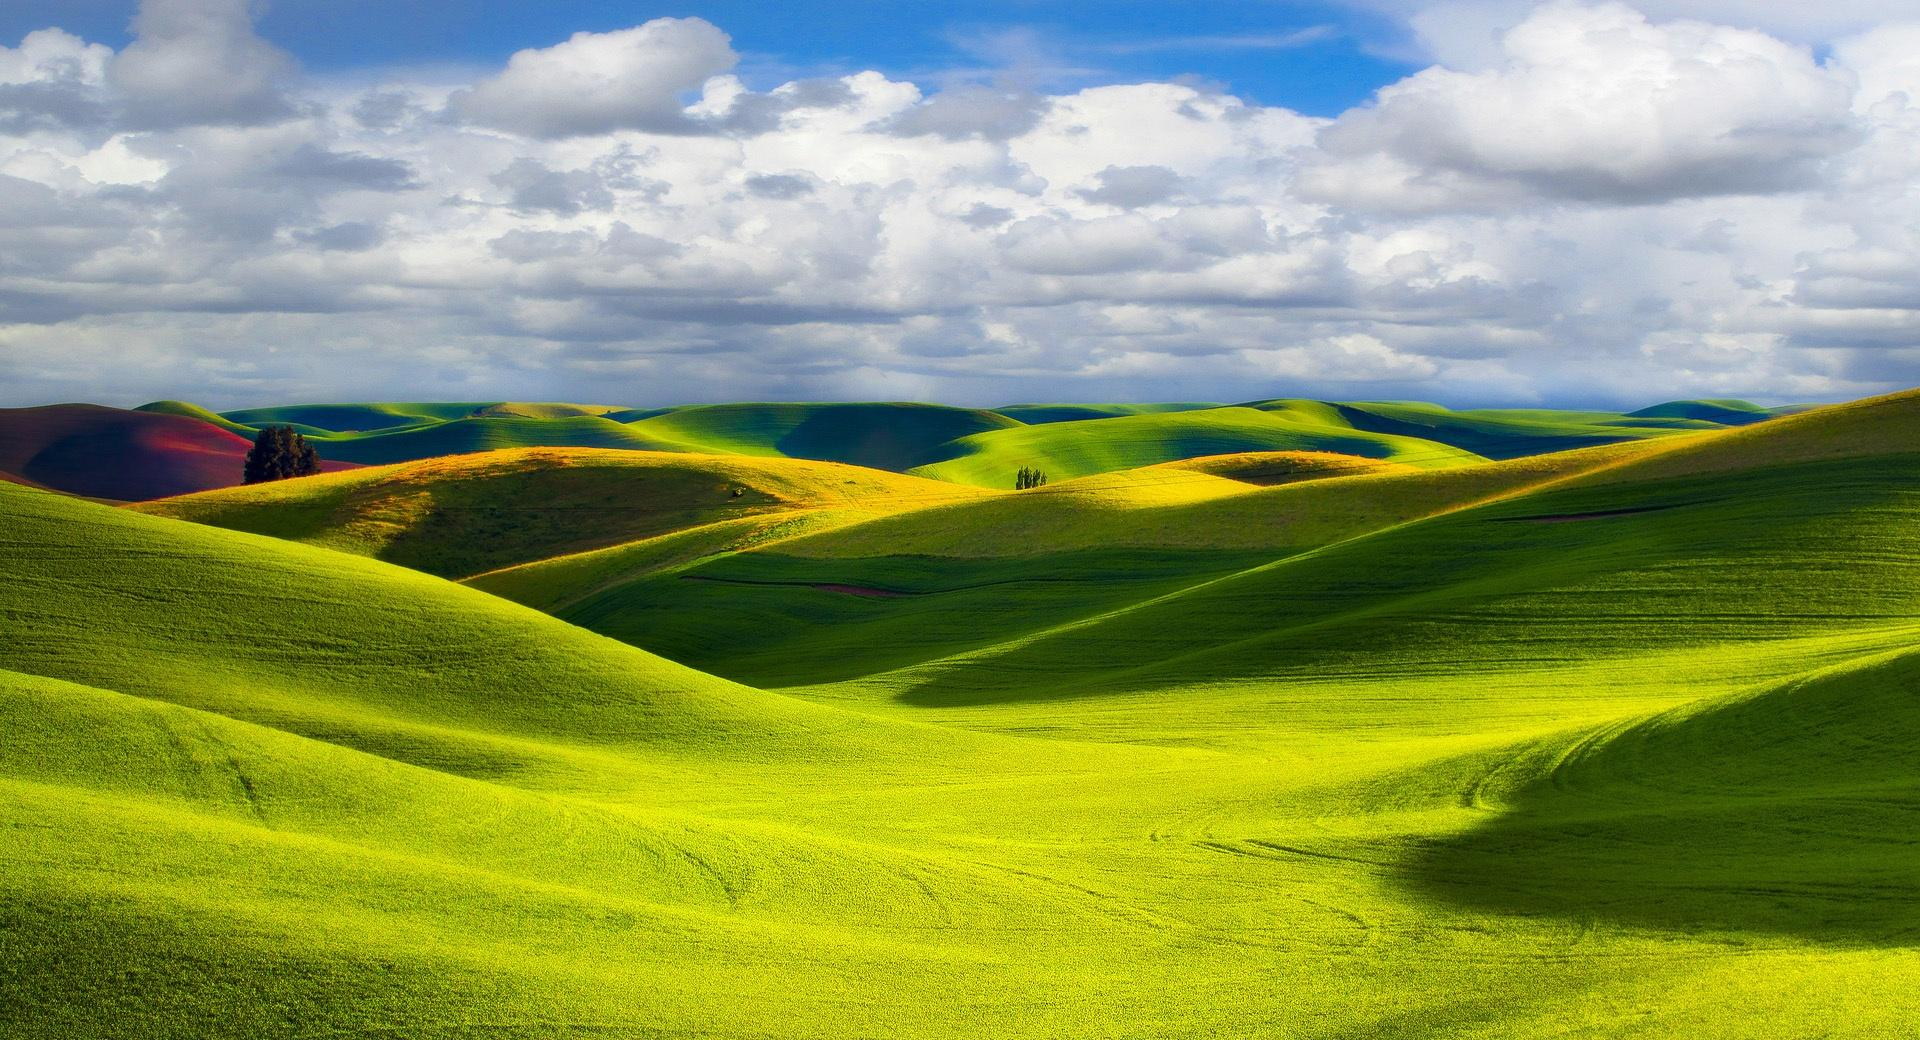 Green Hills at 1280 x 960 size wallpapers HD quality